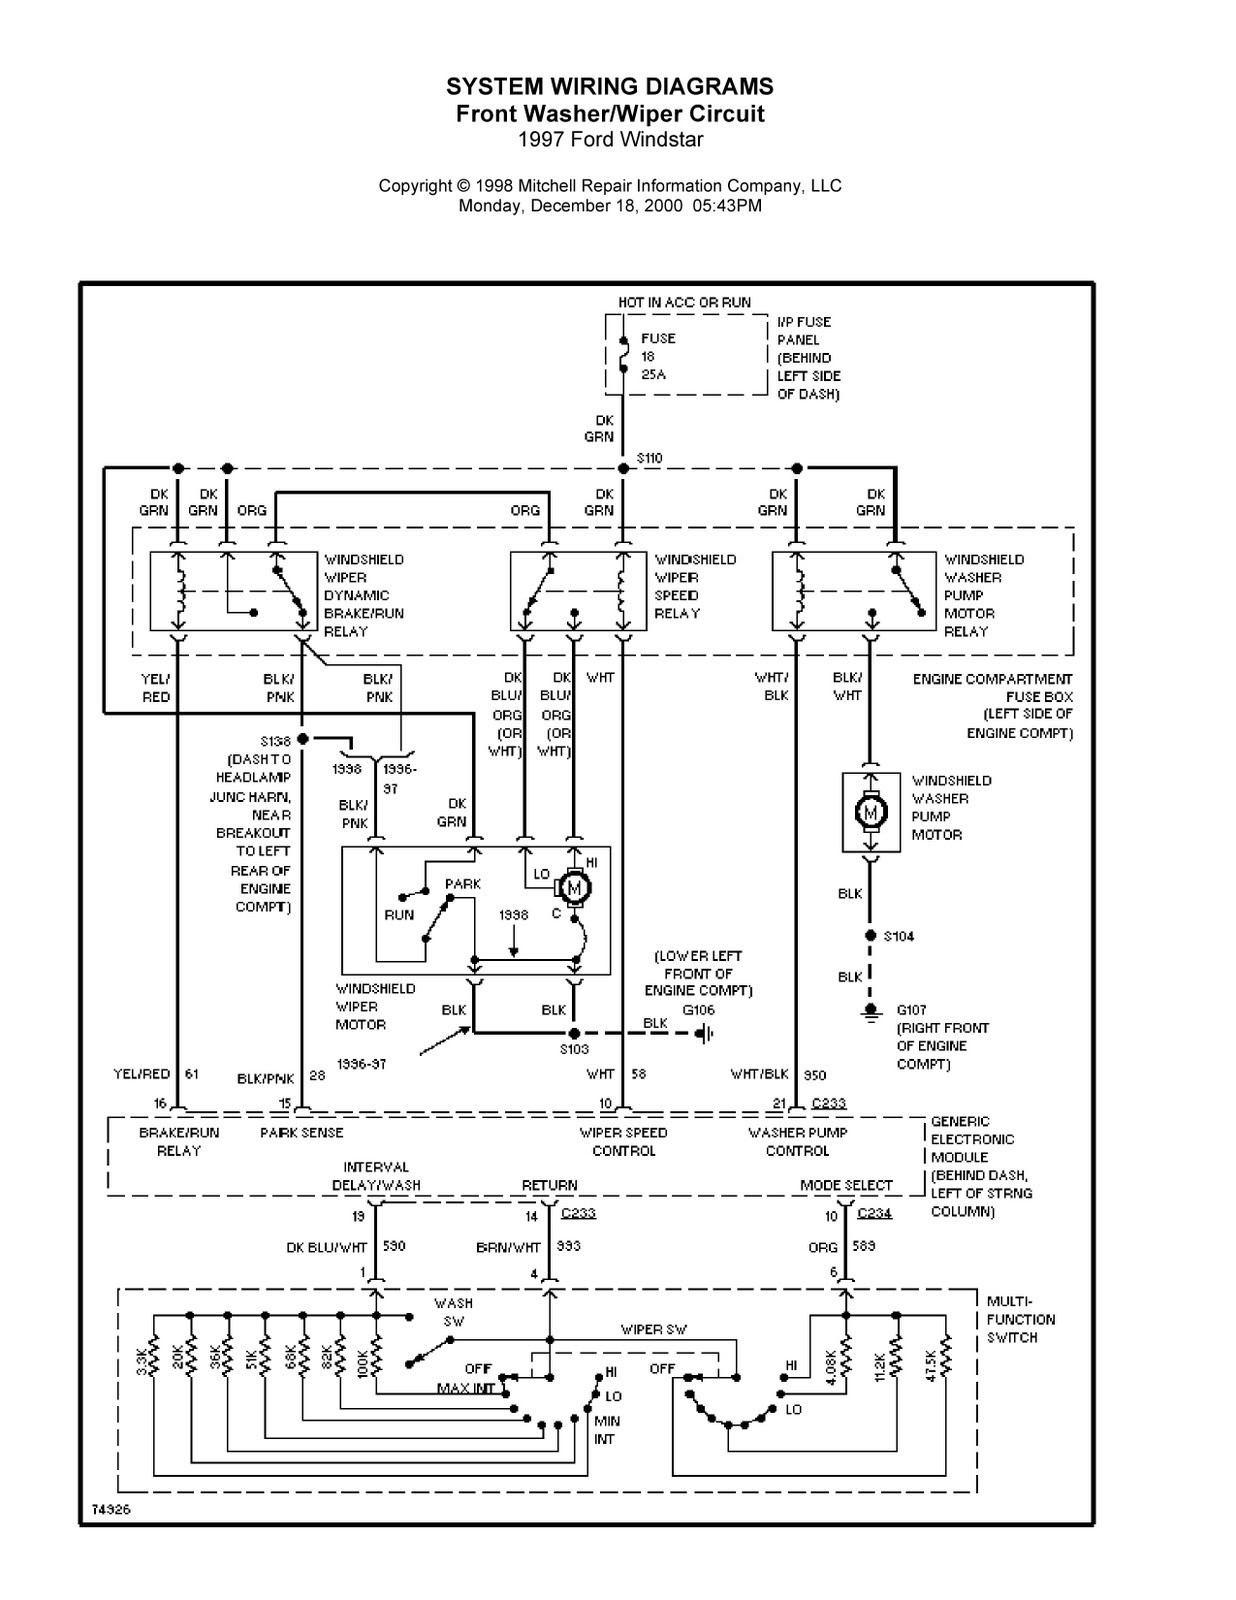 hight resolution of 2003 ford windstar wiring harness wiring diagram mega 2003 ford windstar headlight wiring diagram 2003 ford windstar headlight wiring diagram